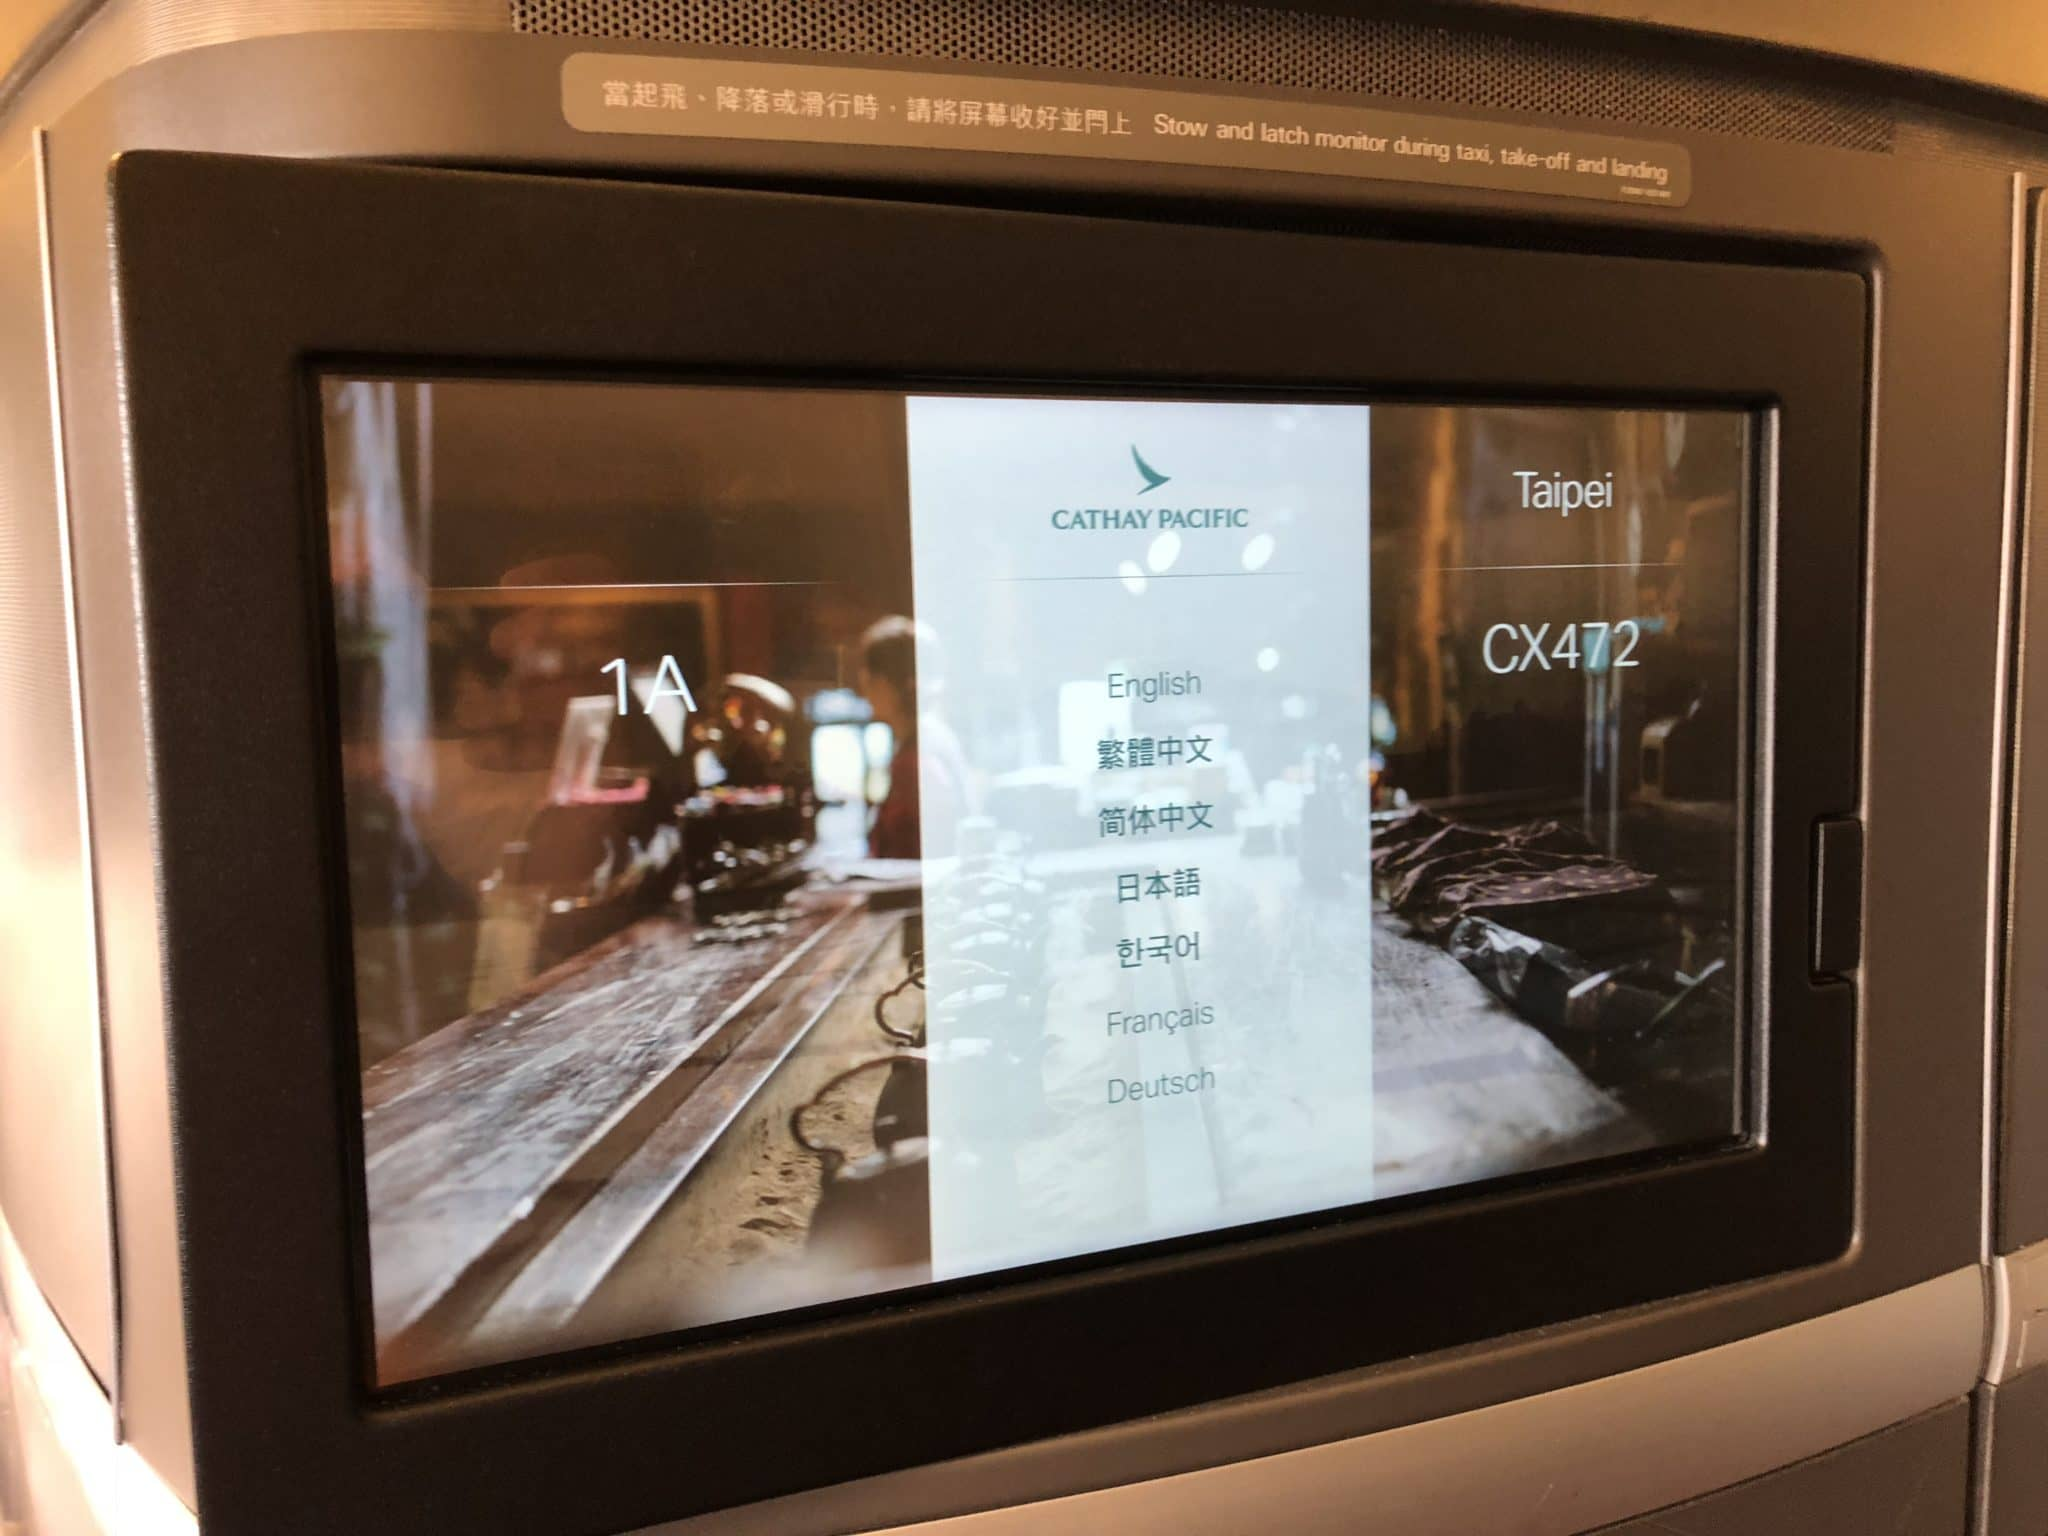 Cathay Pacific First Class Boeing 777-300 Sprache auswaehlen